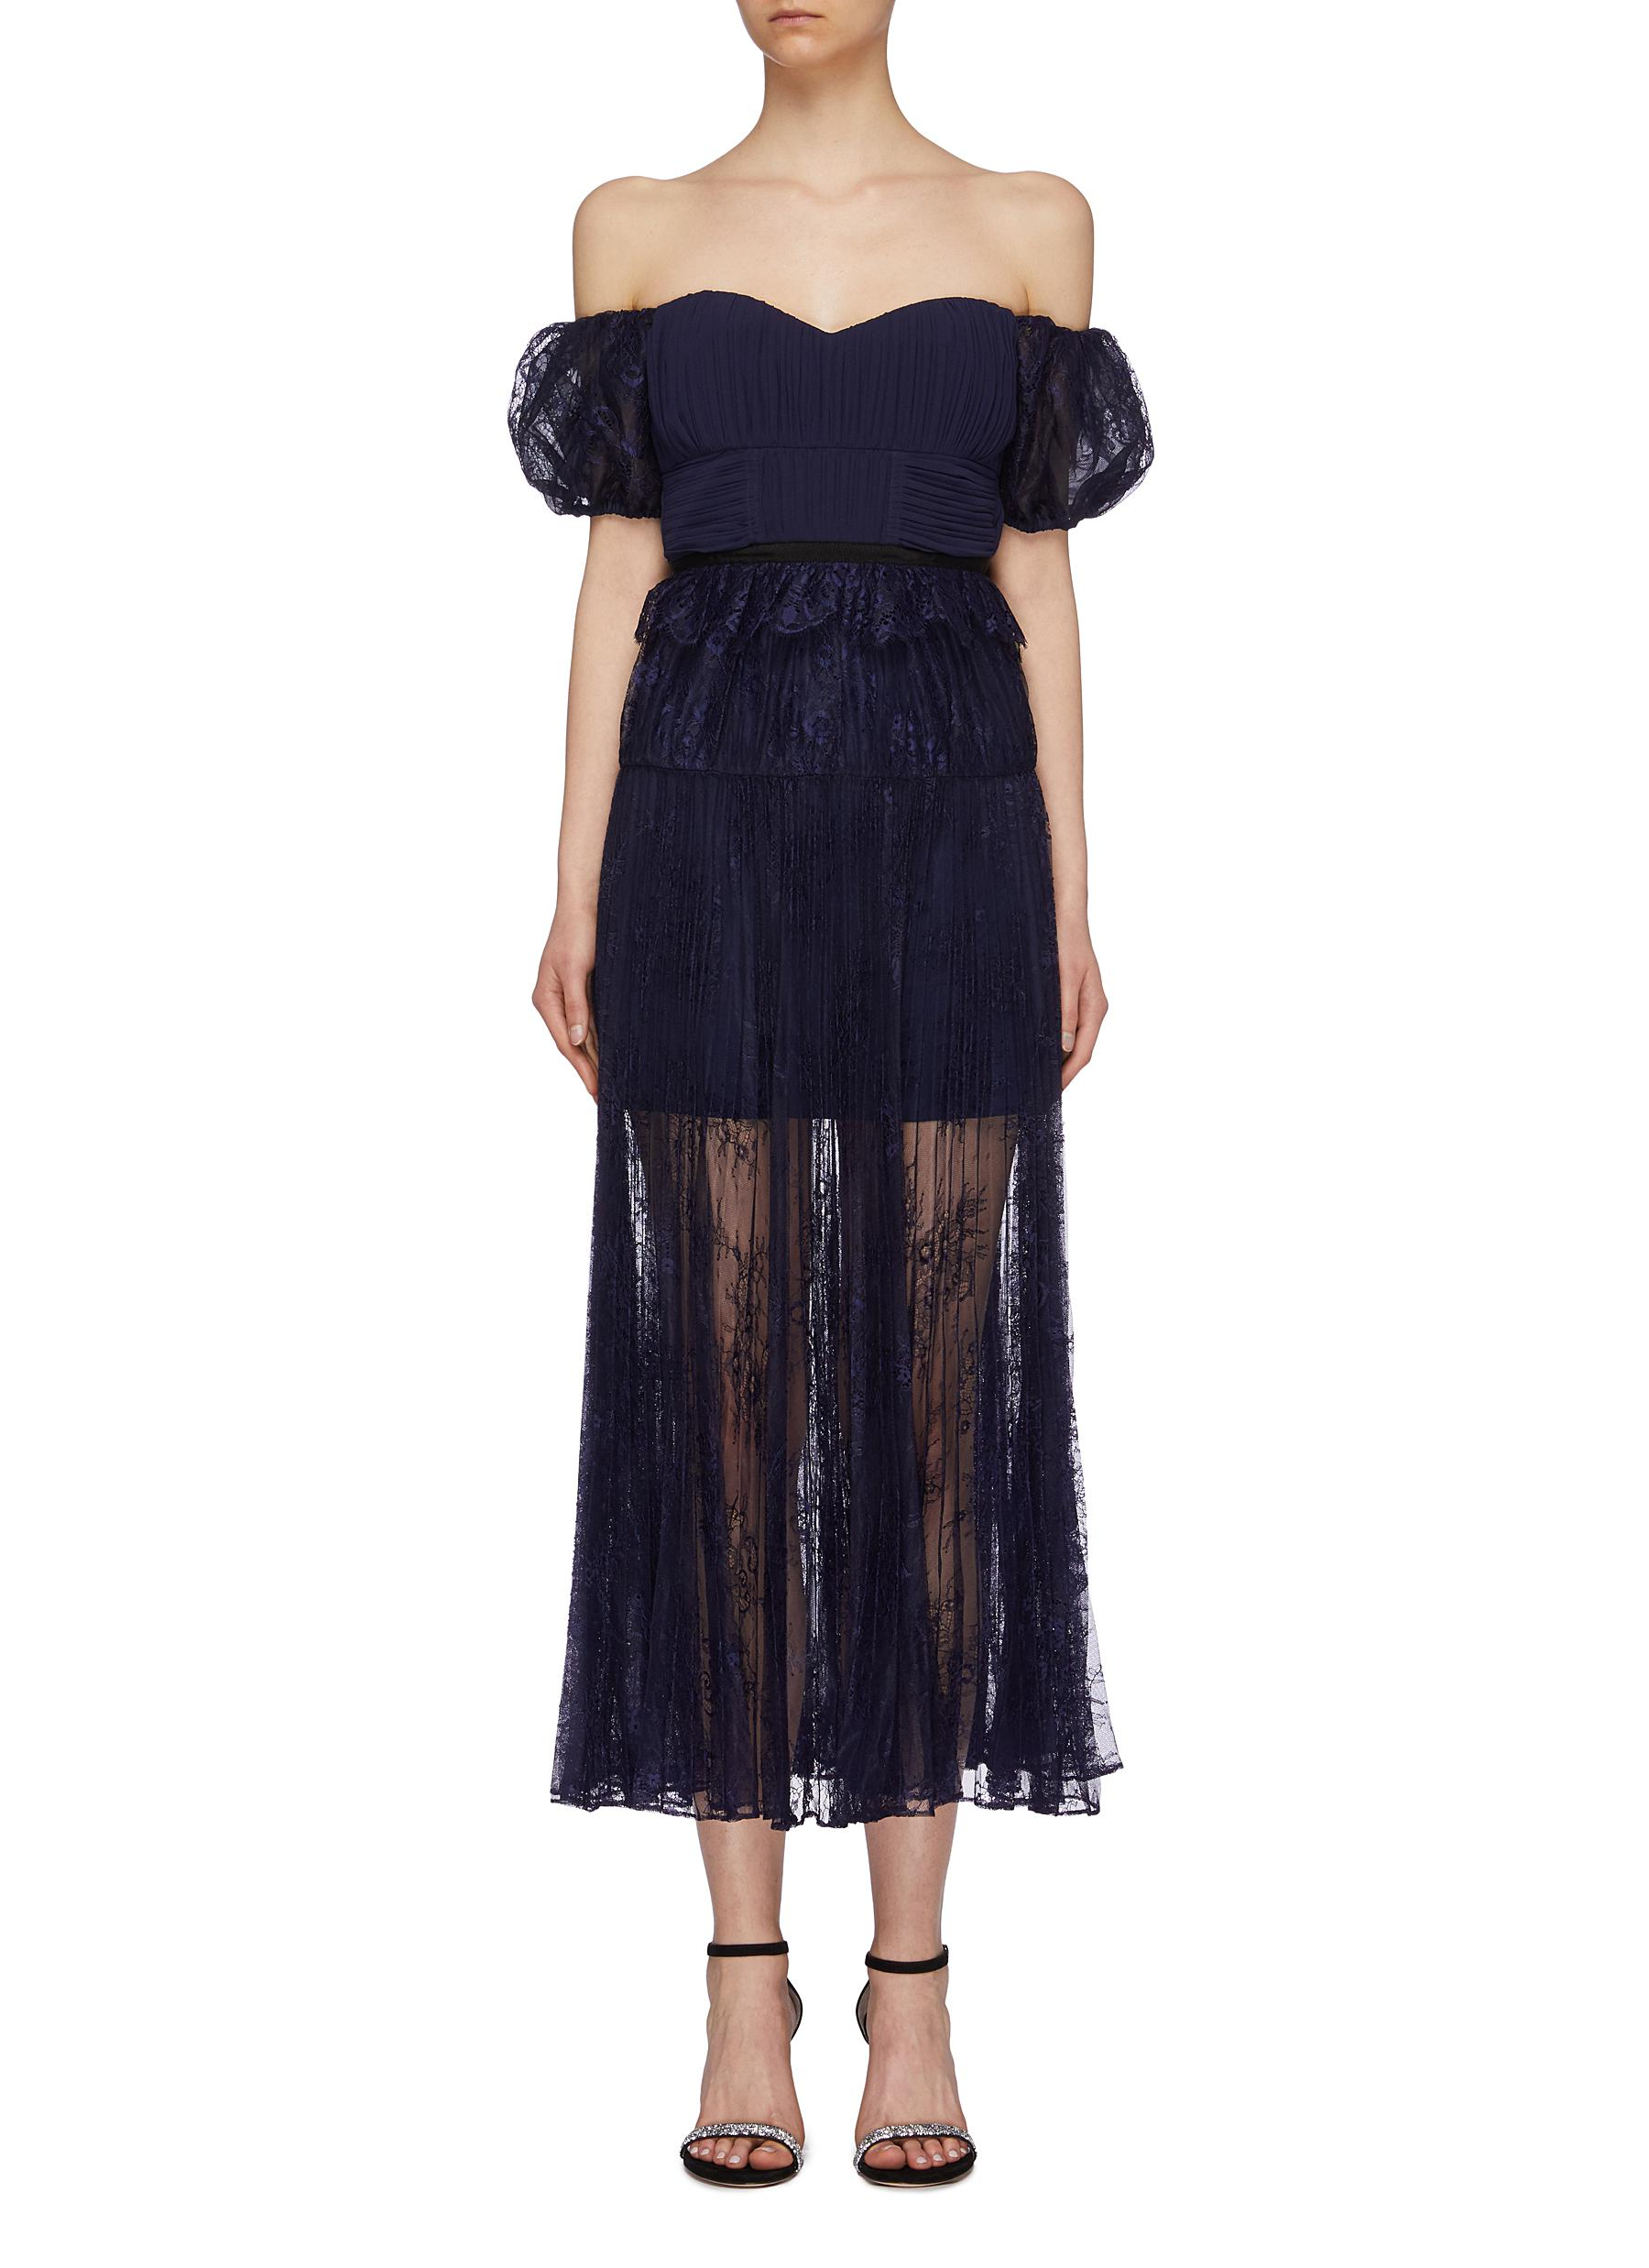 Pleated chantilly lace off-shoulder dress by Self-Portrait